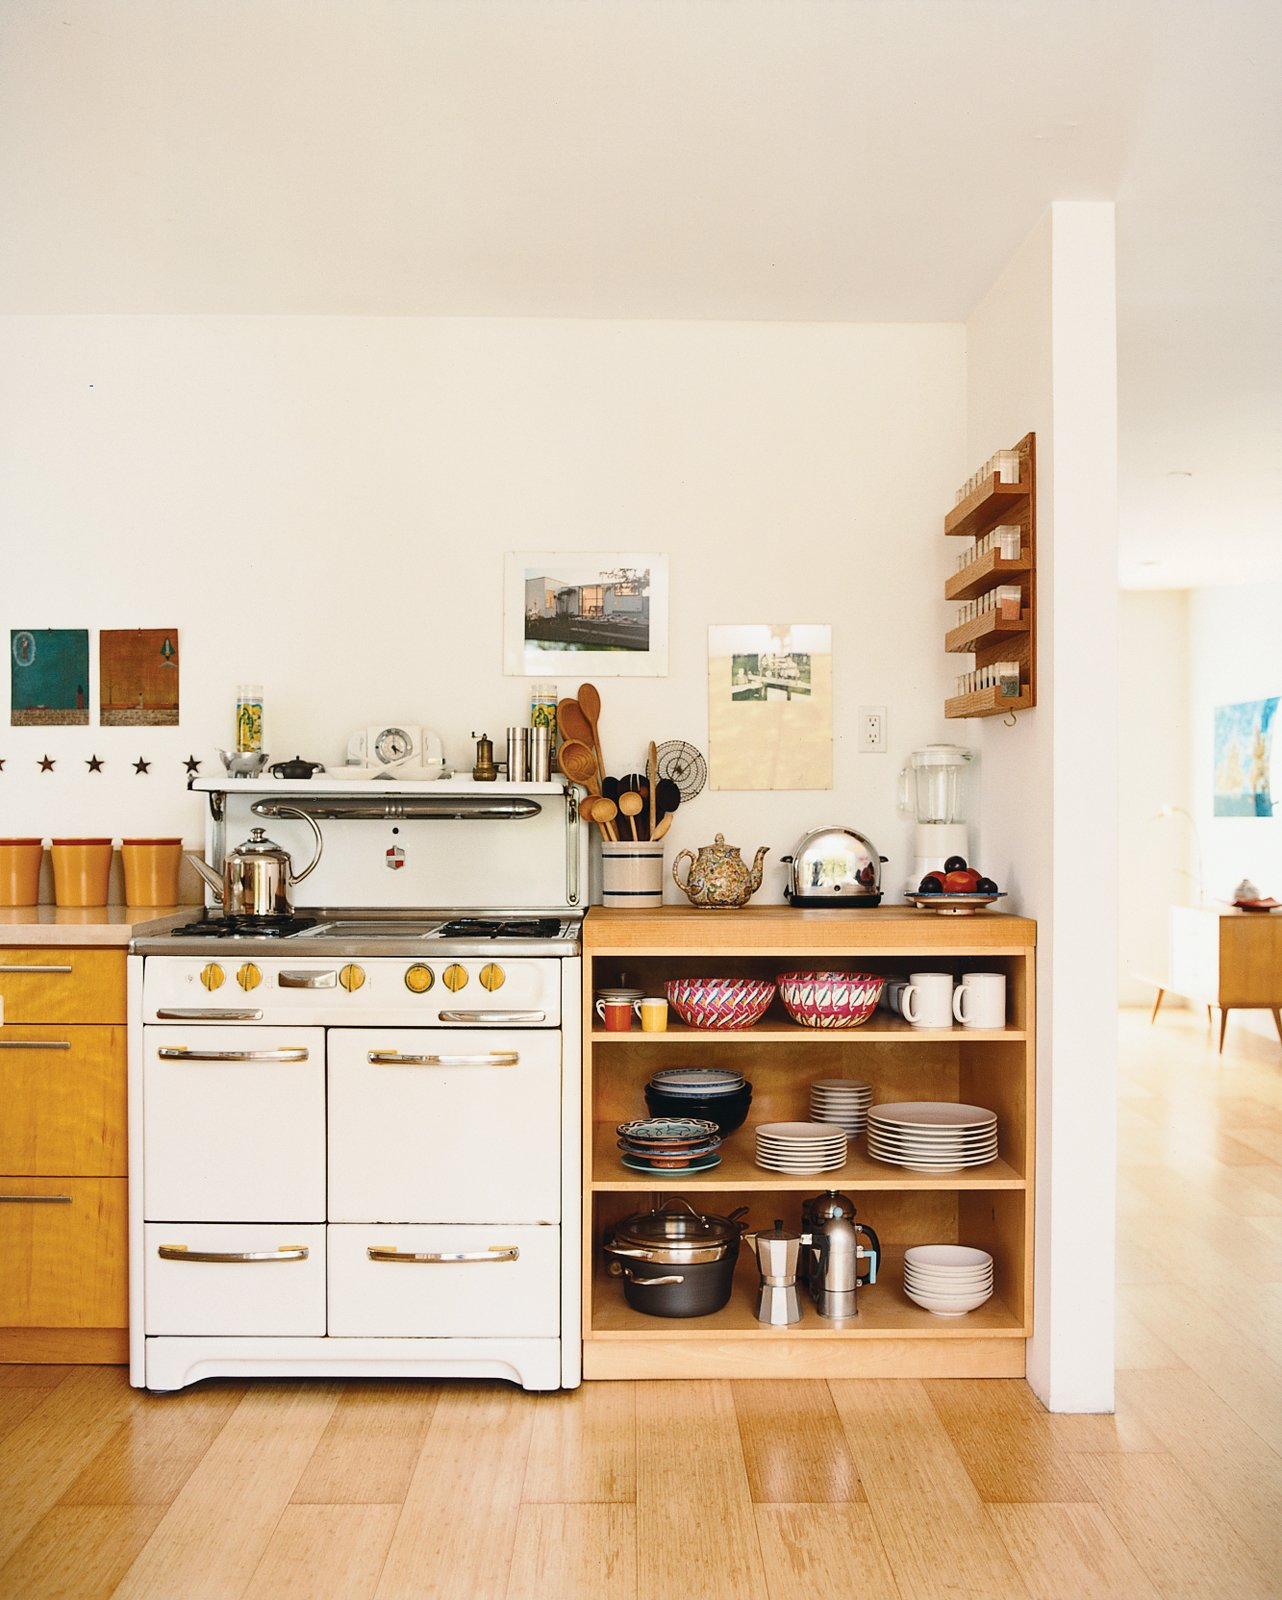 "Cooktops, Light Hardwood Floor, Storage Room, and Shelves Storage Type ""A lot of the things in here are found objects,"" Siegal says of her home's contents. The vintage stove, with its funky yellow Bakelite knobs, was inherited from the previous owner.  Photo 4 of 14 in Method Lab"